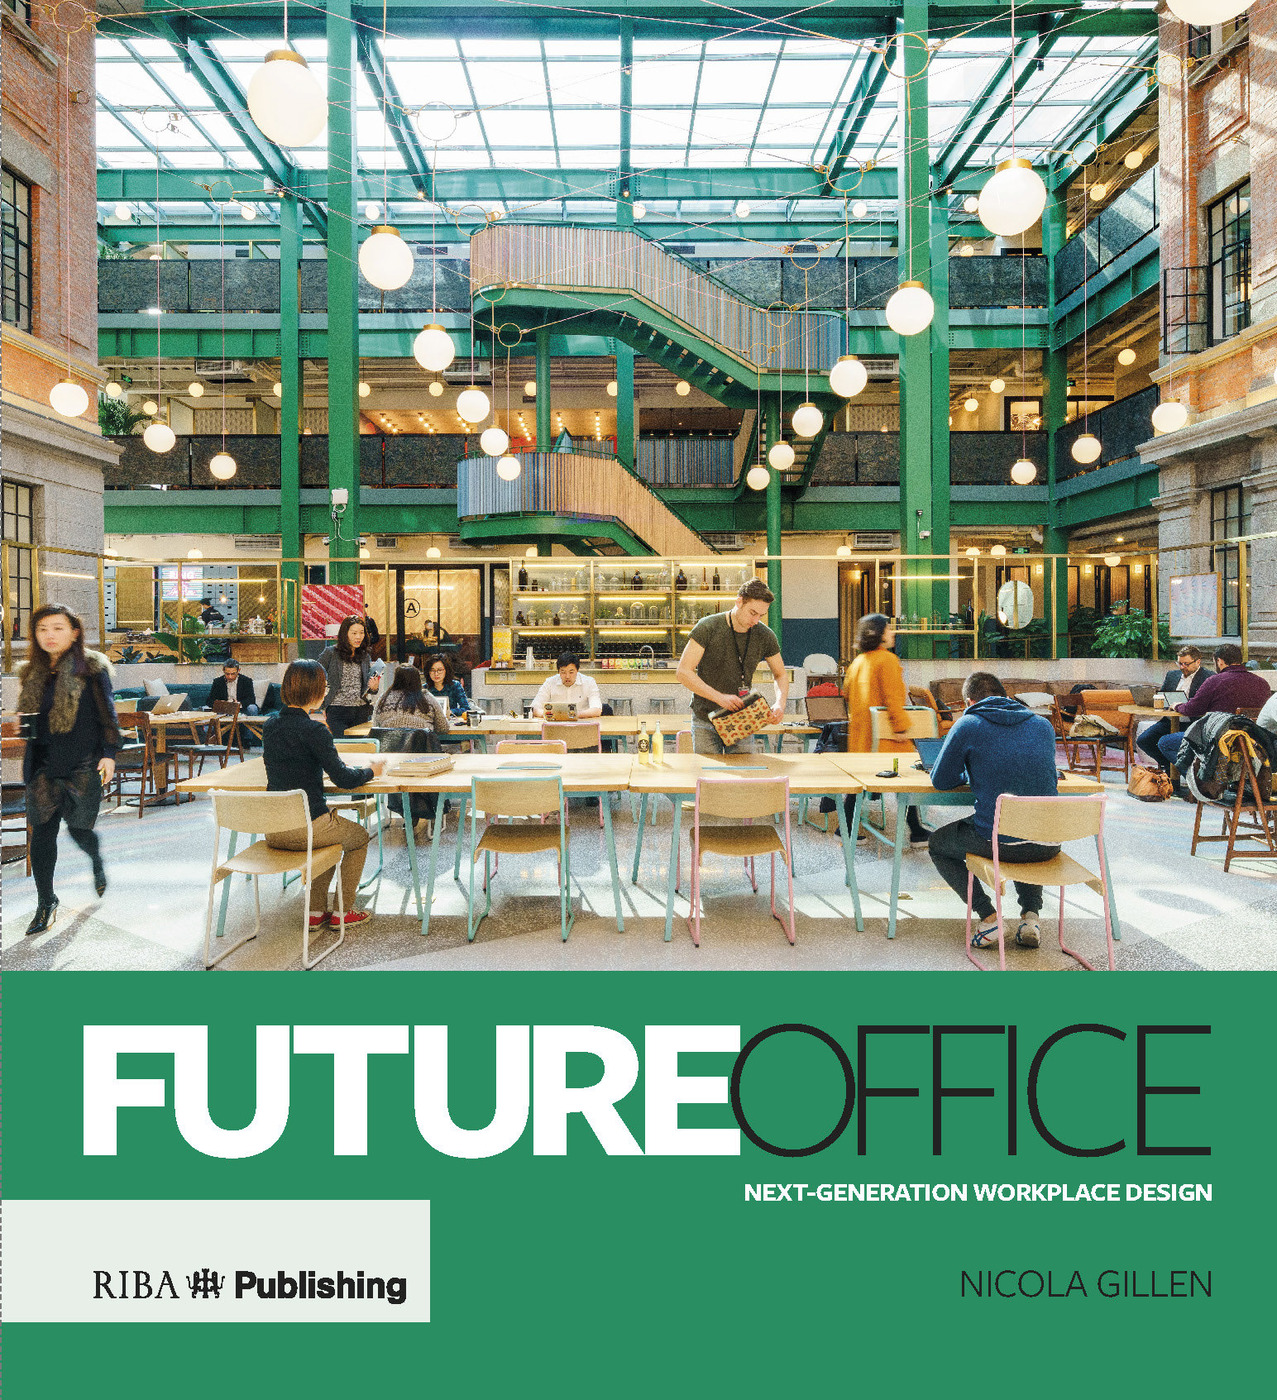 Future Office: Next-generation workplace design book cover